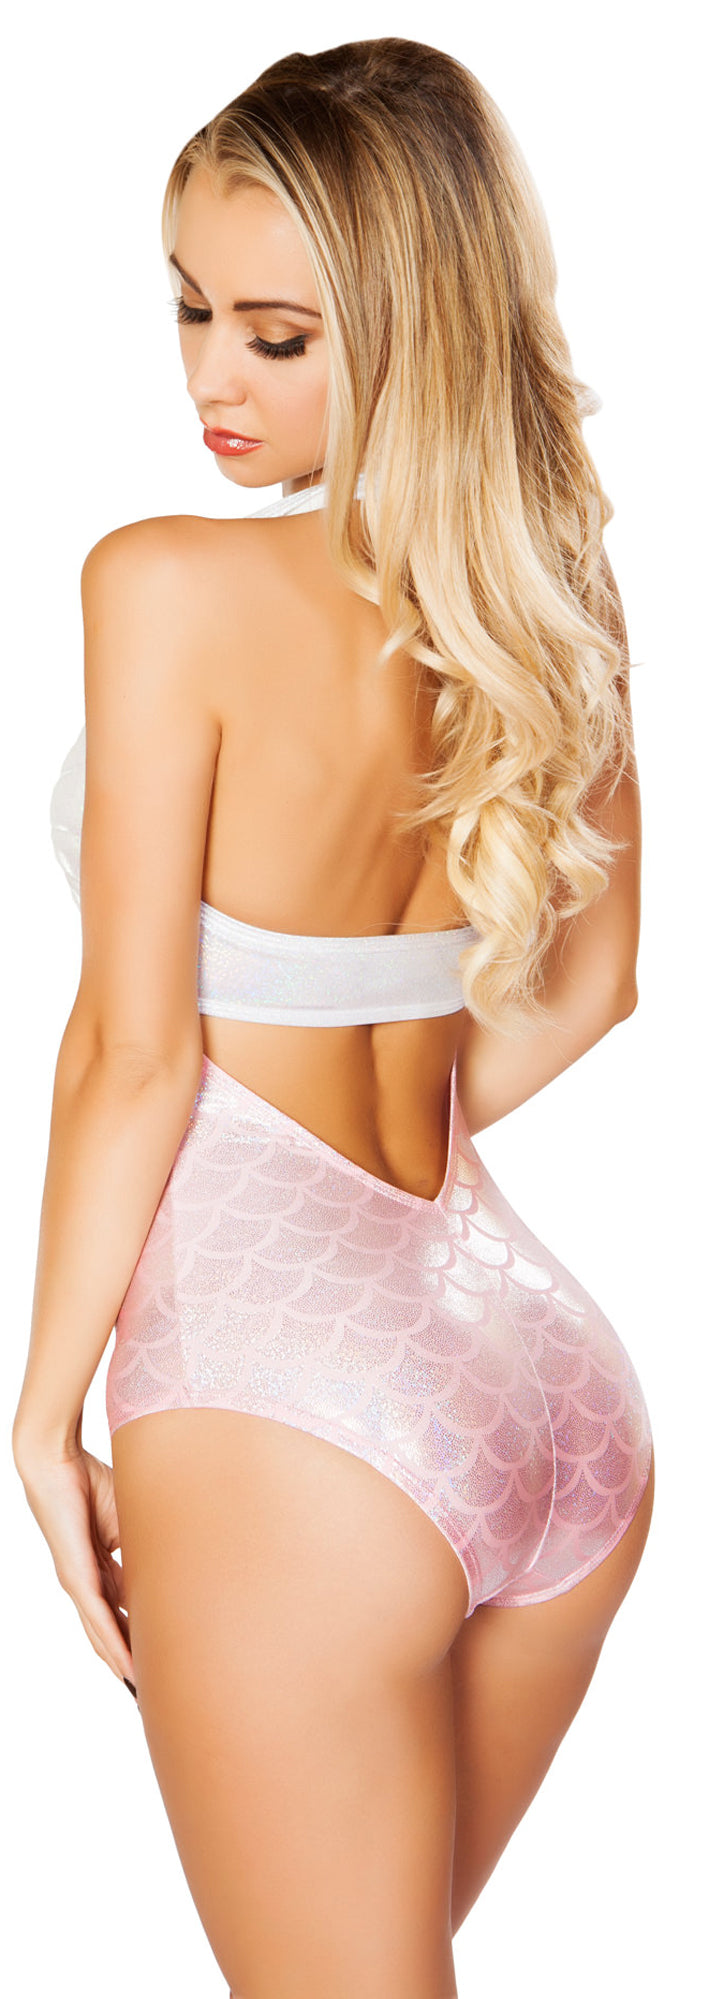 Silver and Pink Mermaid Cut Out Romper RM-3279-SILVER/PINK Back